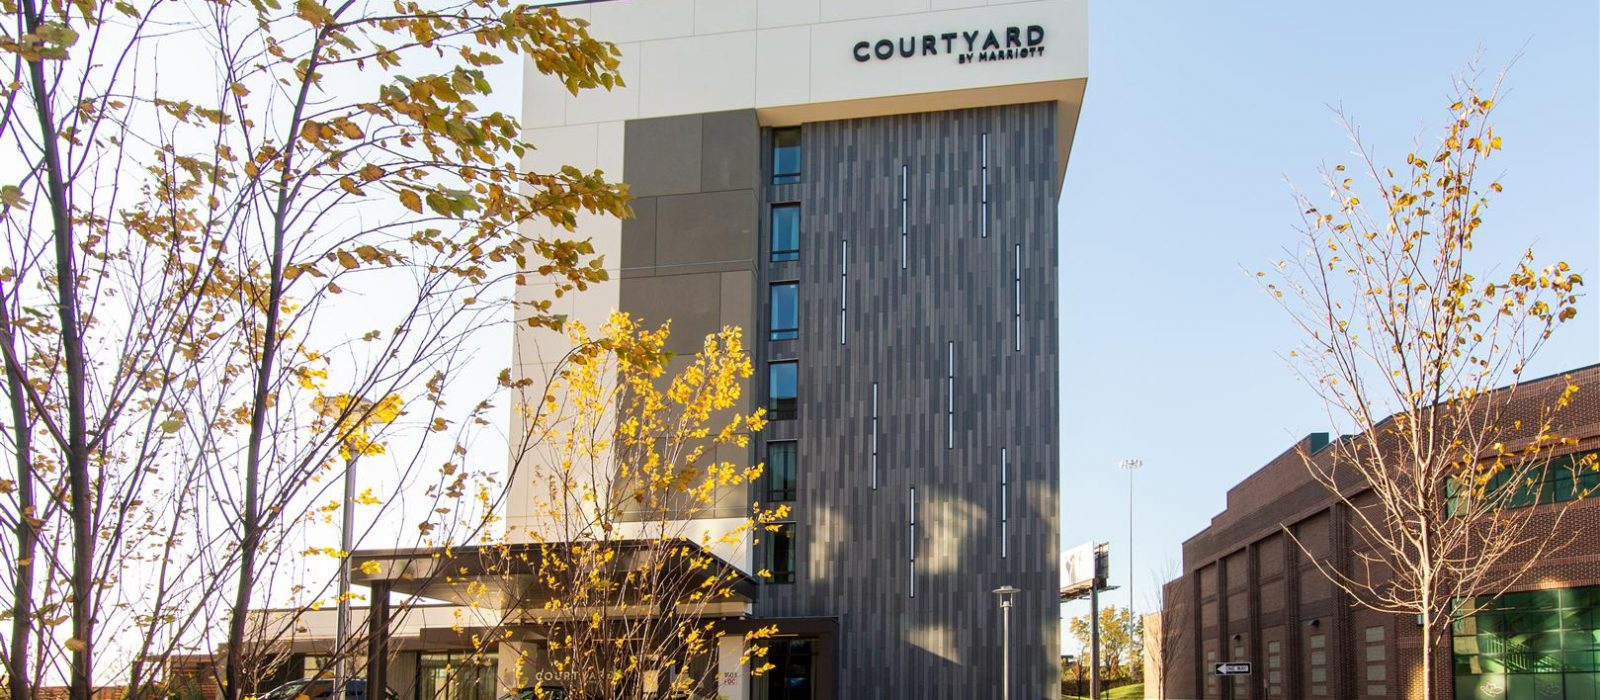 Courtyard McHenry H